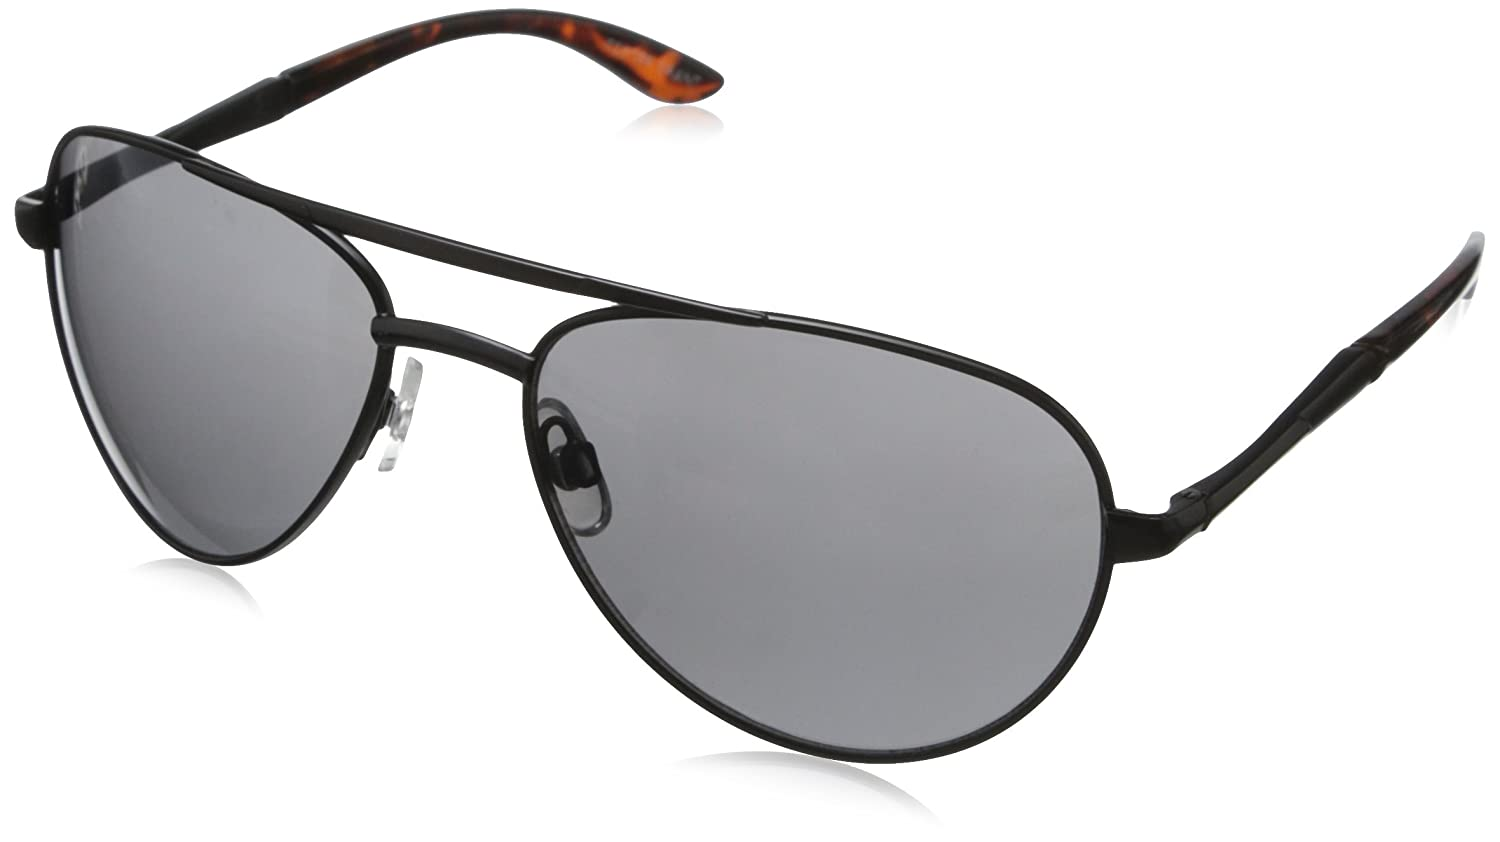 d675e20ee0c2 Amazon.com: Foster Grant Men's Adventurer 1 Polarized Wrap, Black, 60 mm:  Clothing